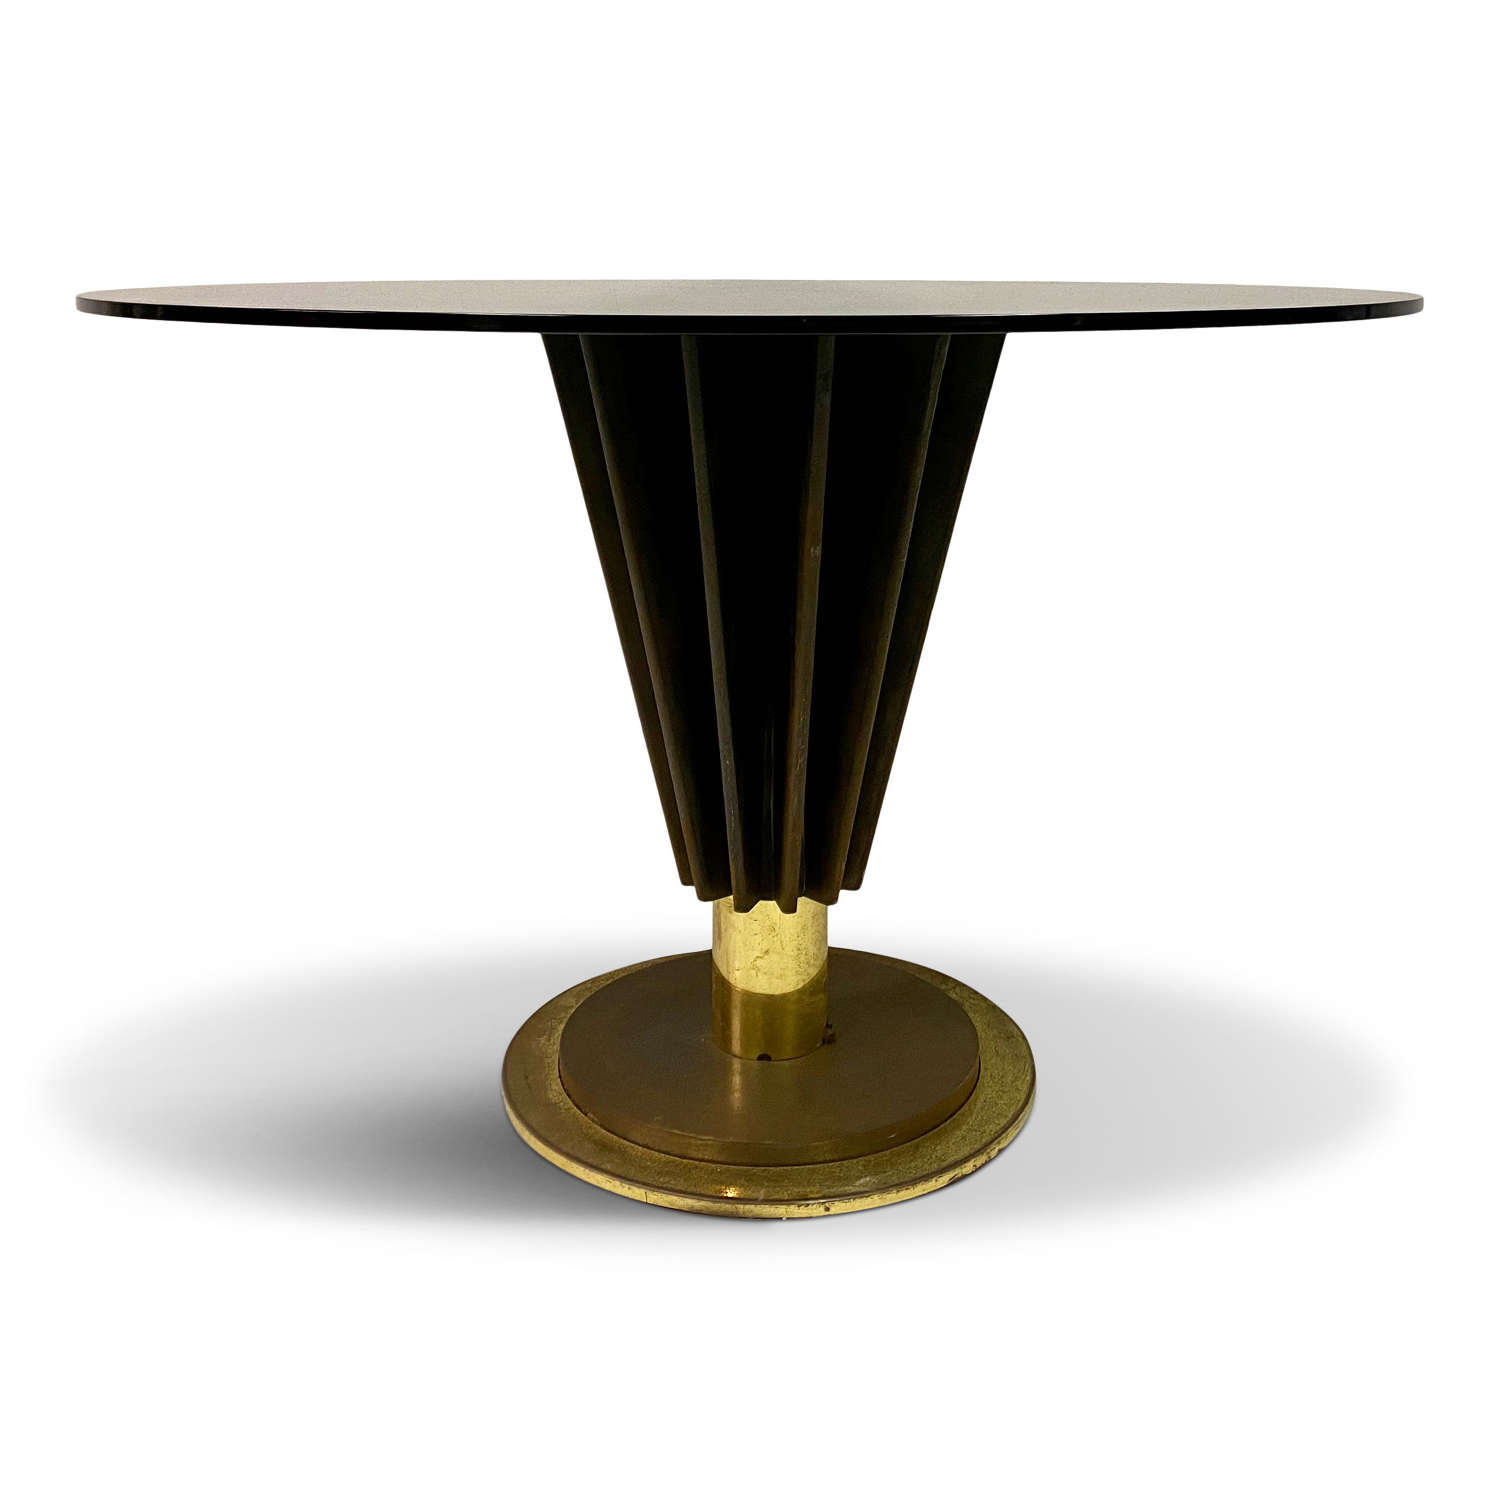 1970s Round Dining Table by Pierre Cardin